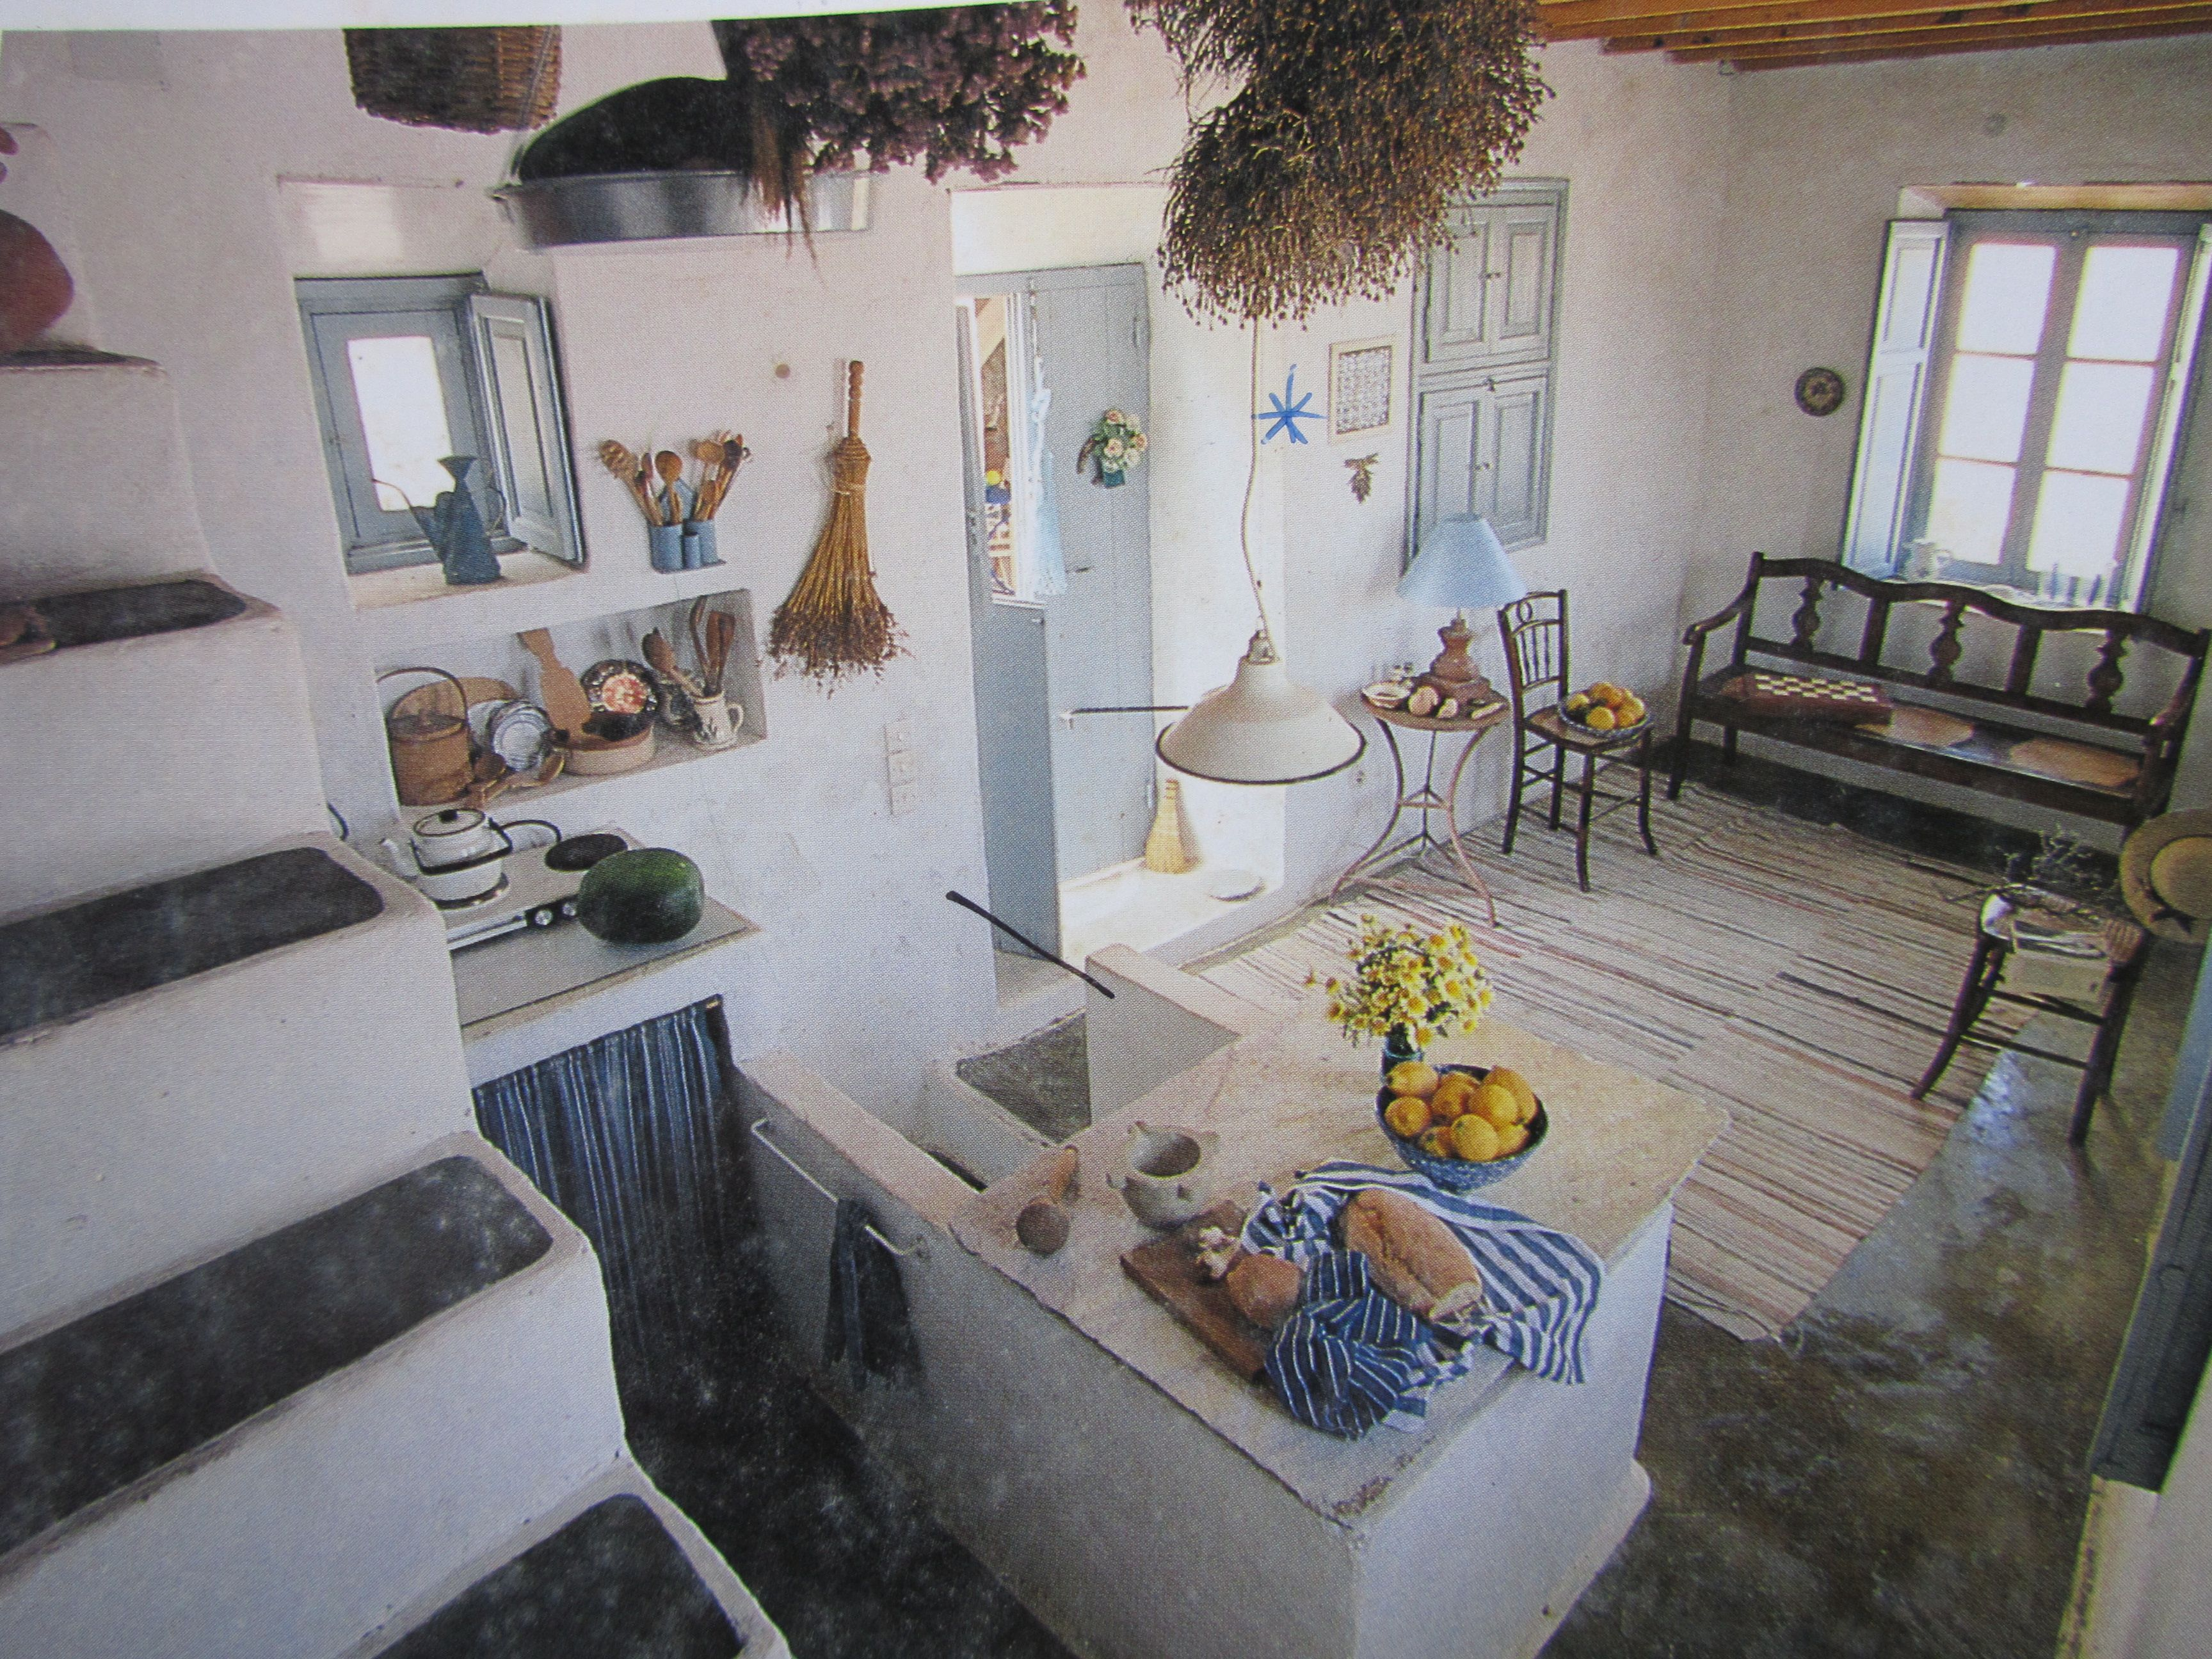 Greek Home 01 - Kitchen And Living Island Decor In